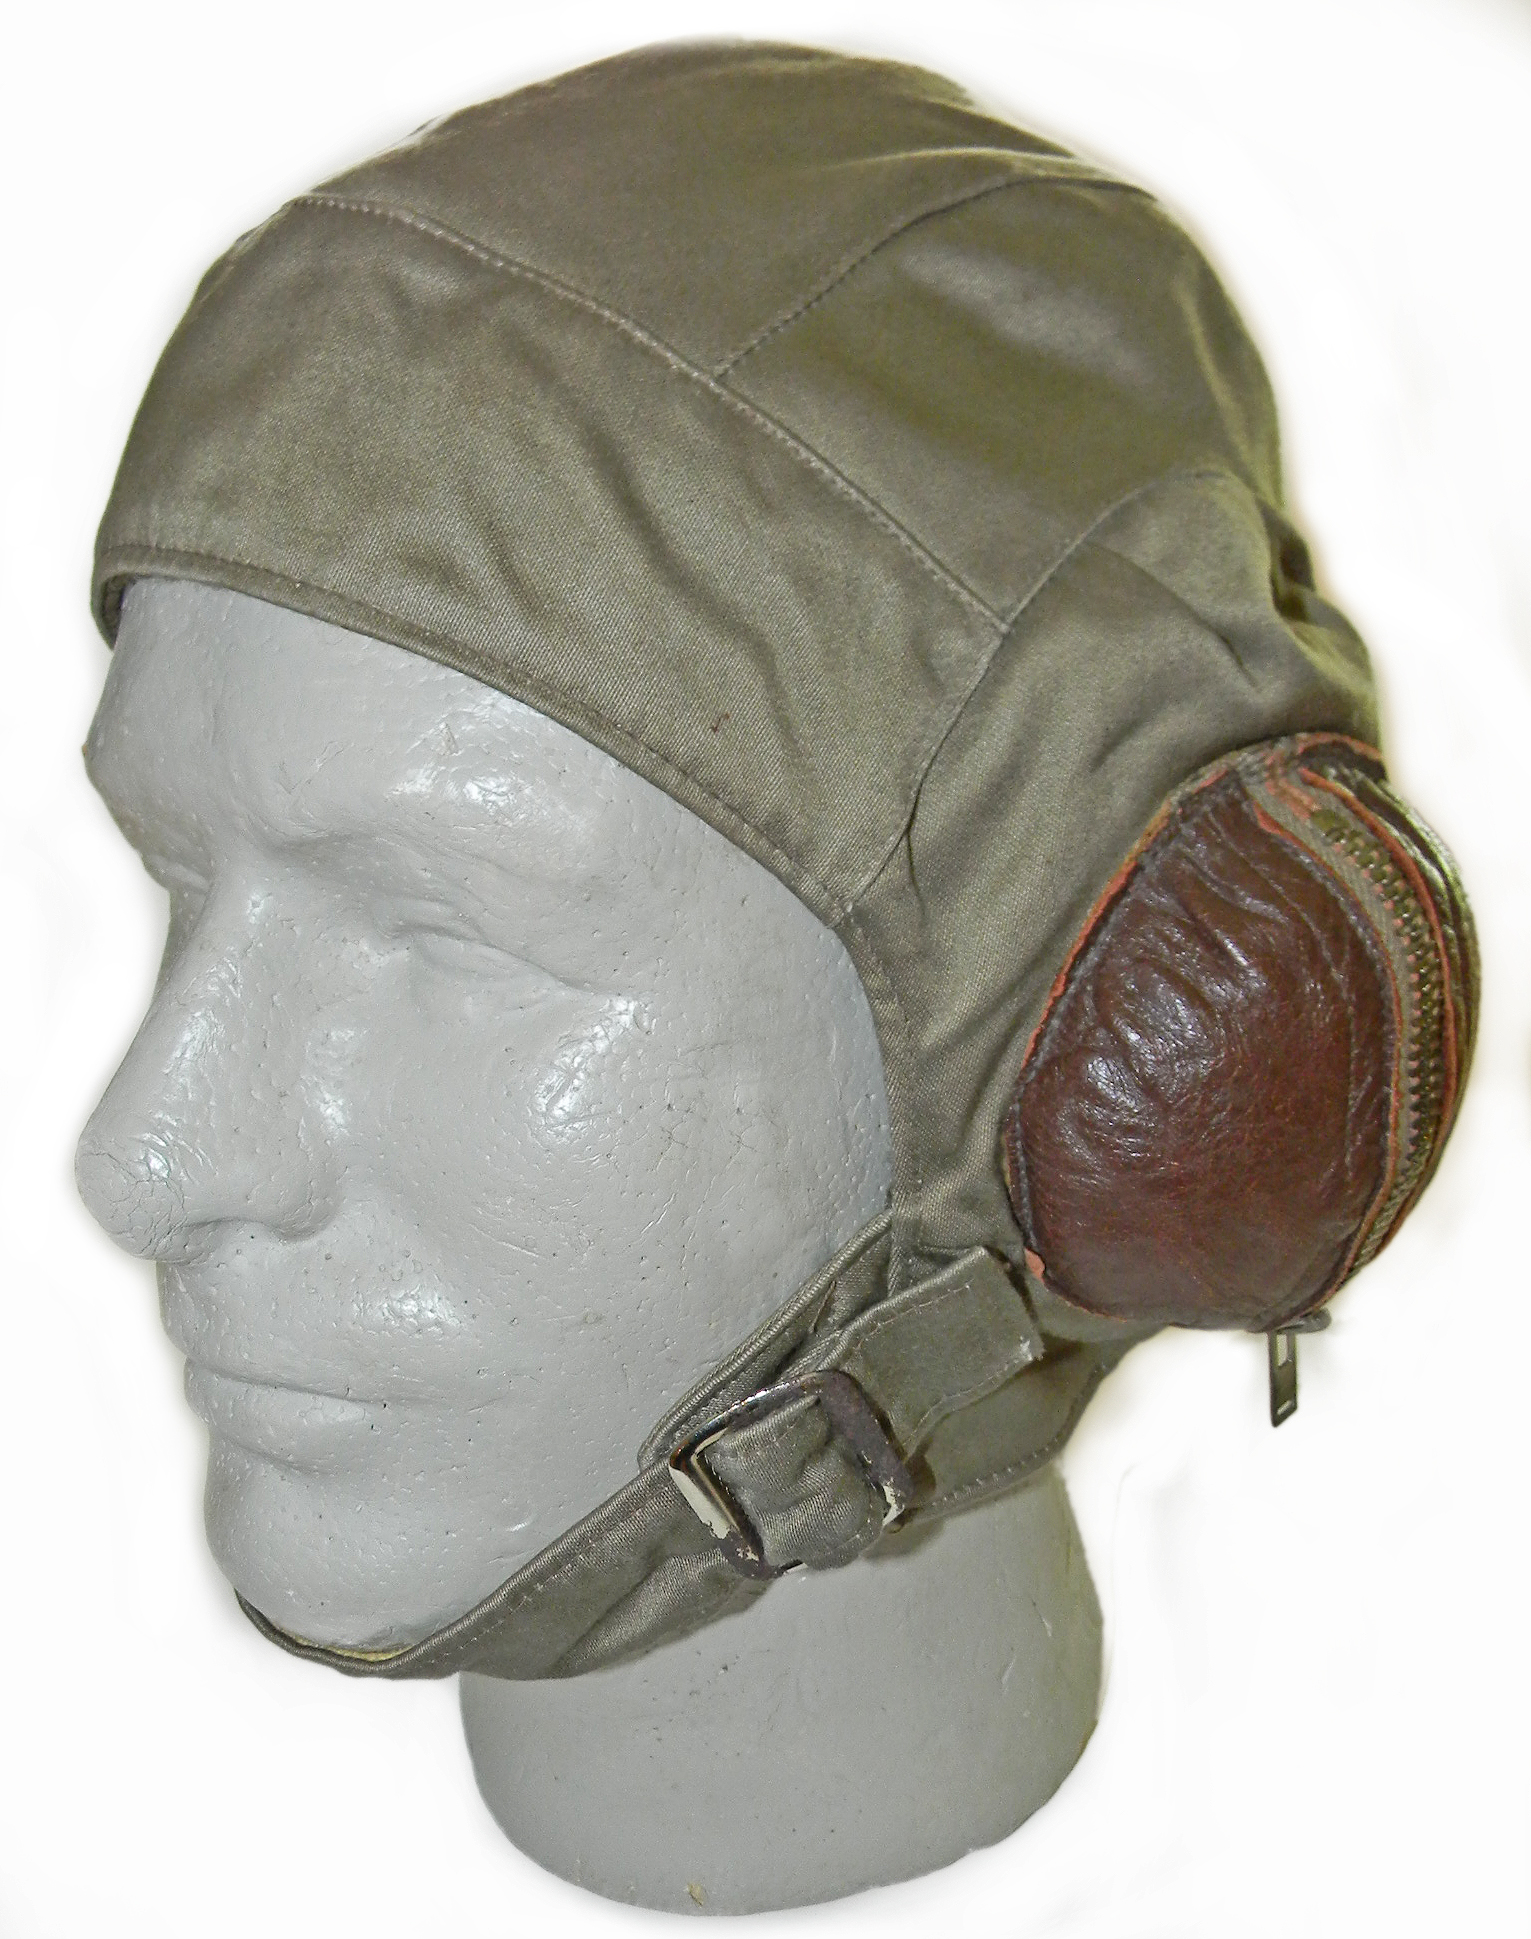 RCAF / RCN flying helmet